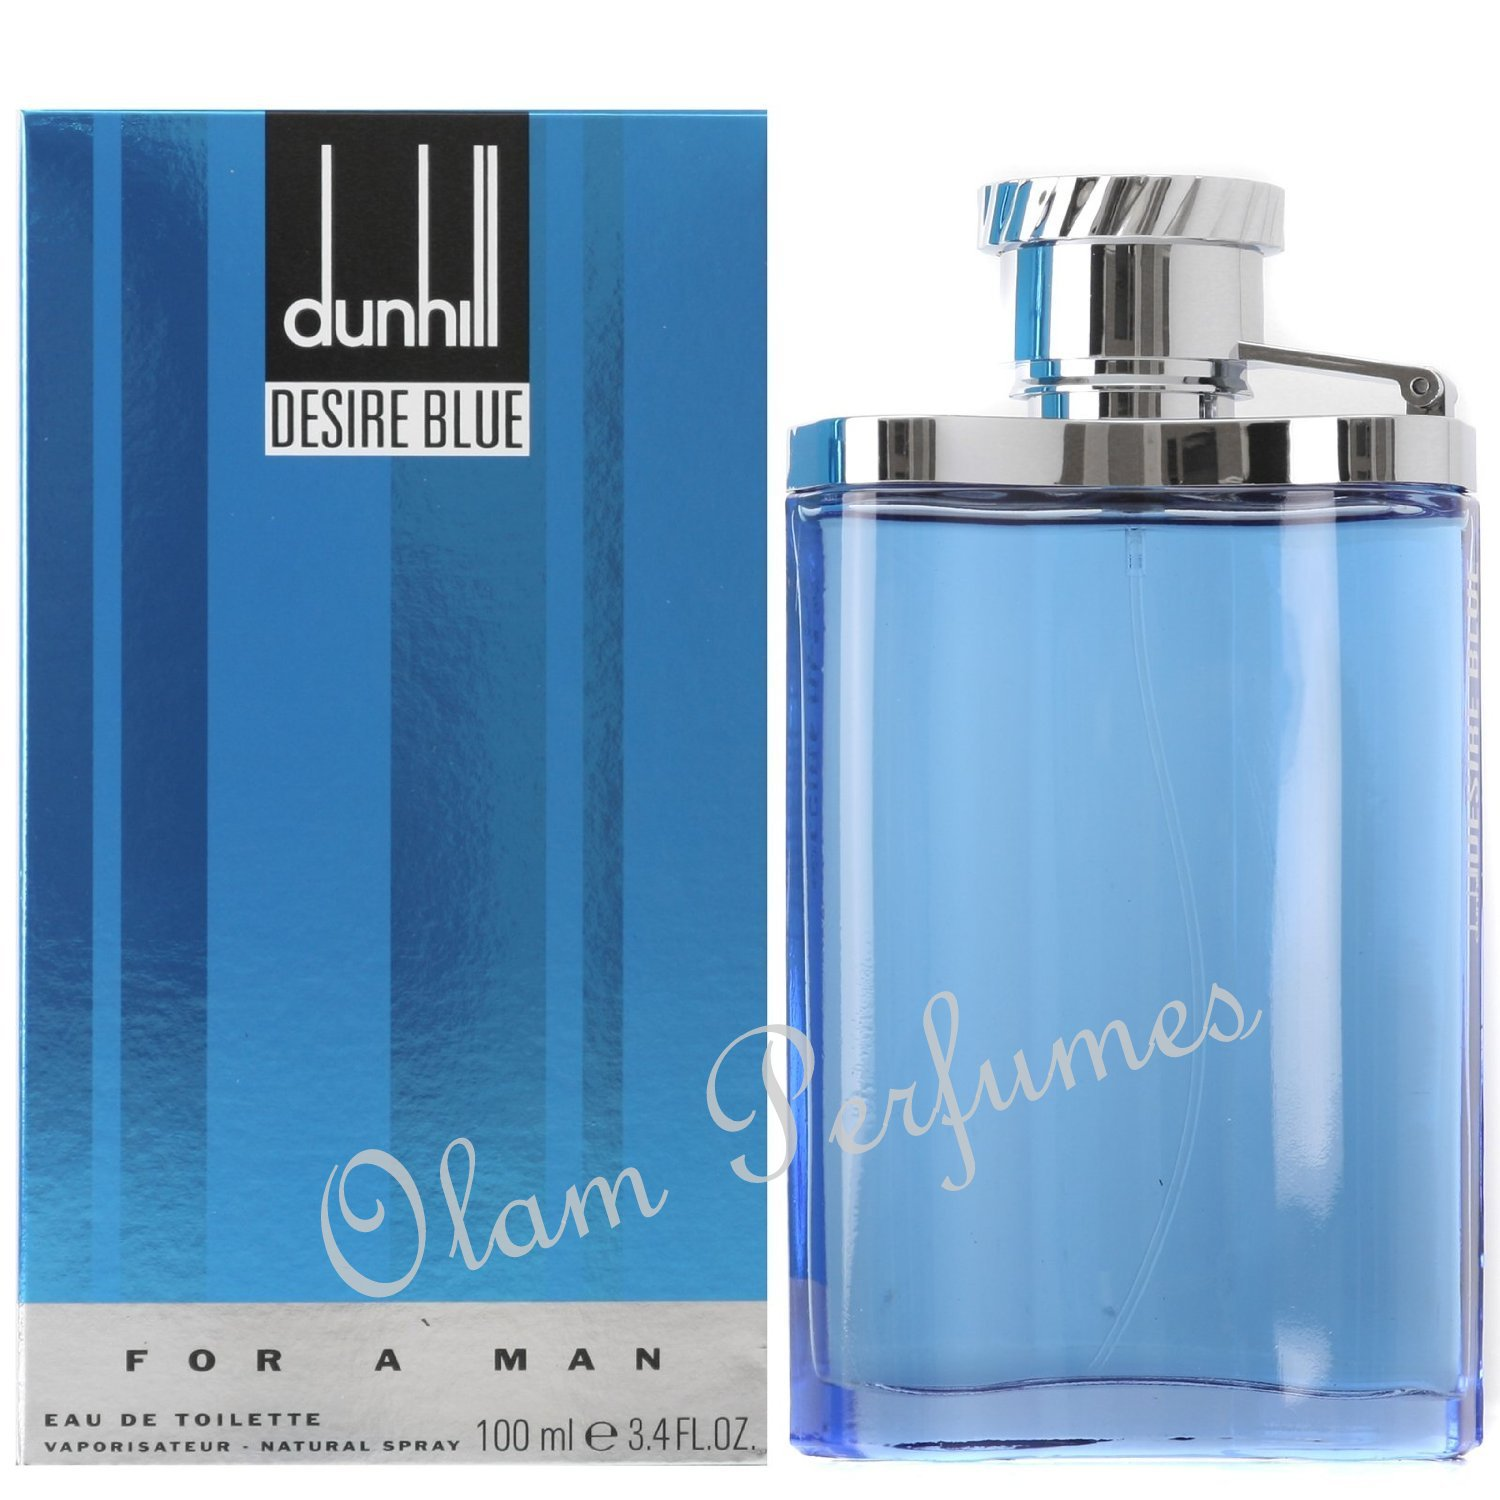 Dunhill Desire Blue Eau de Toilette Spray 3.4oz 100ml